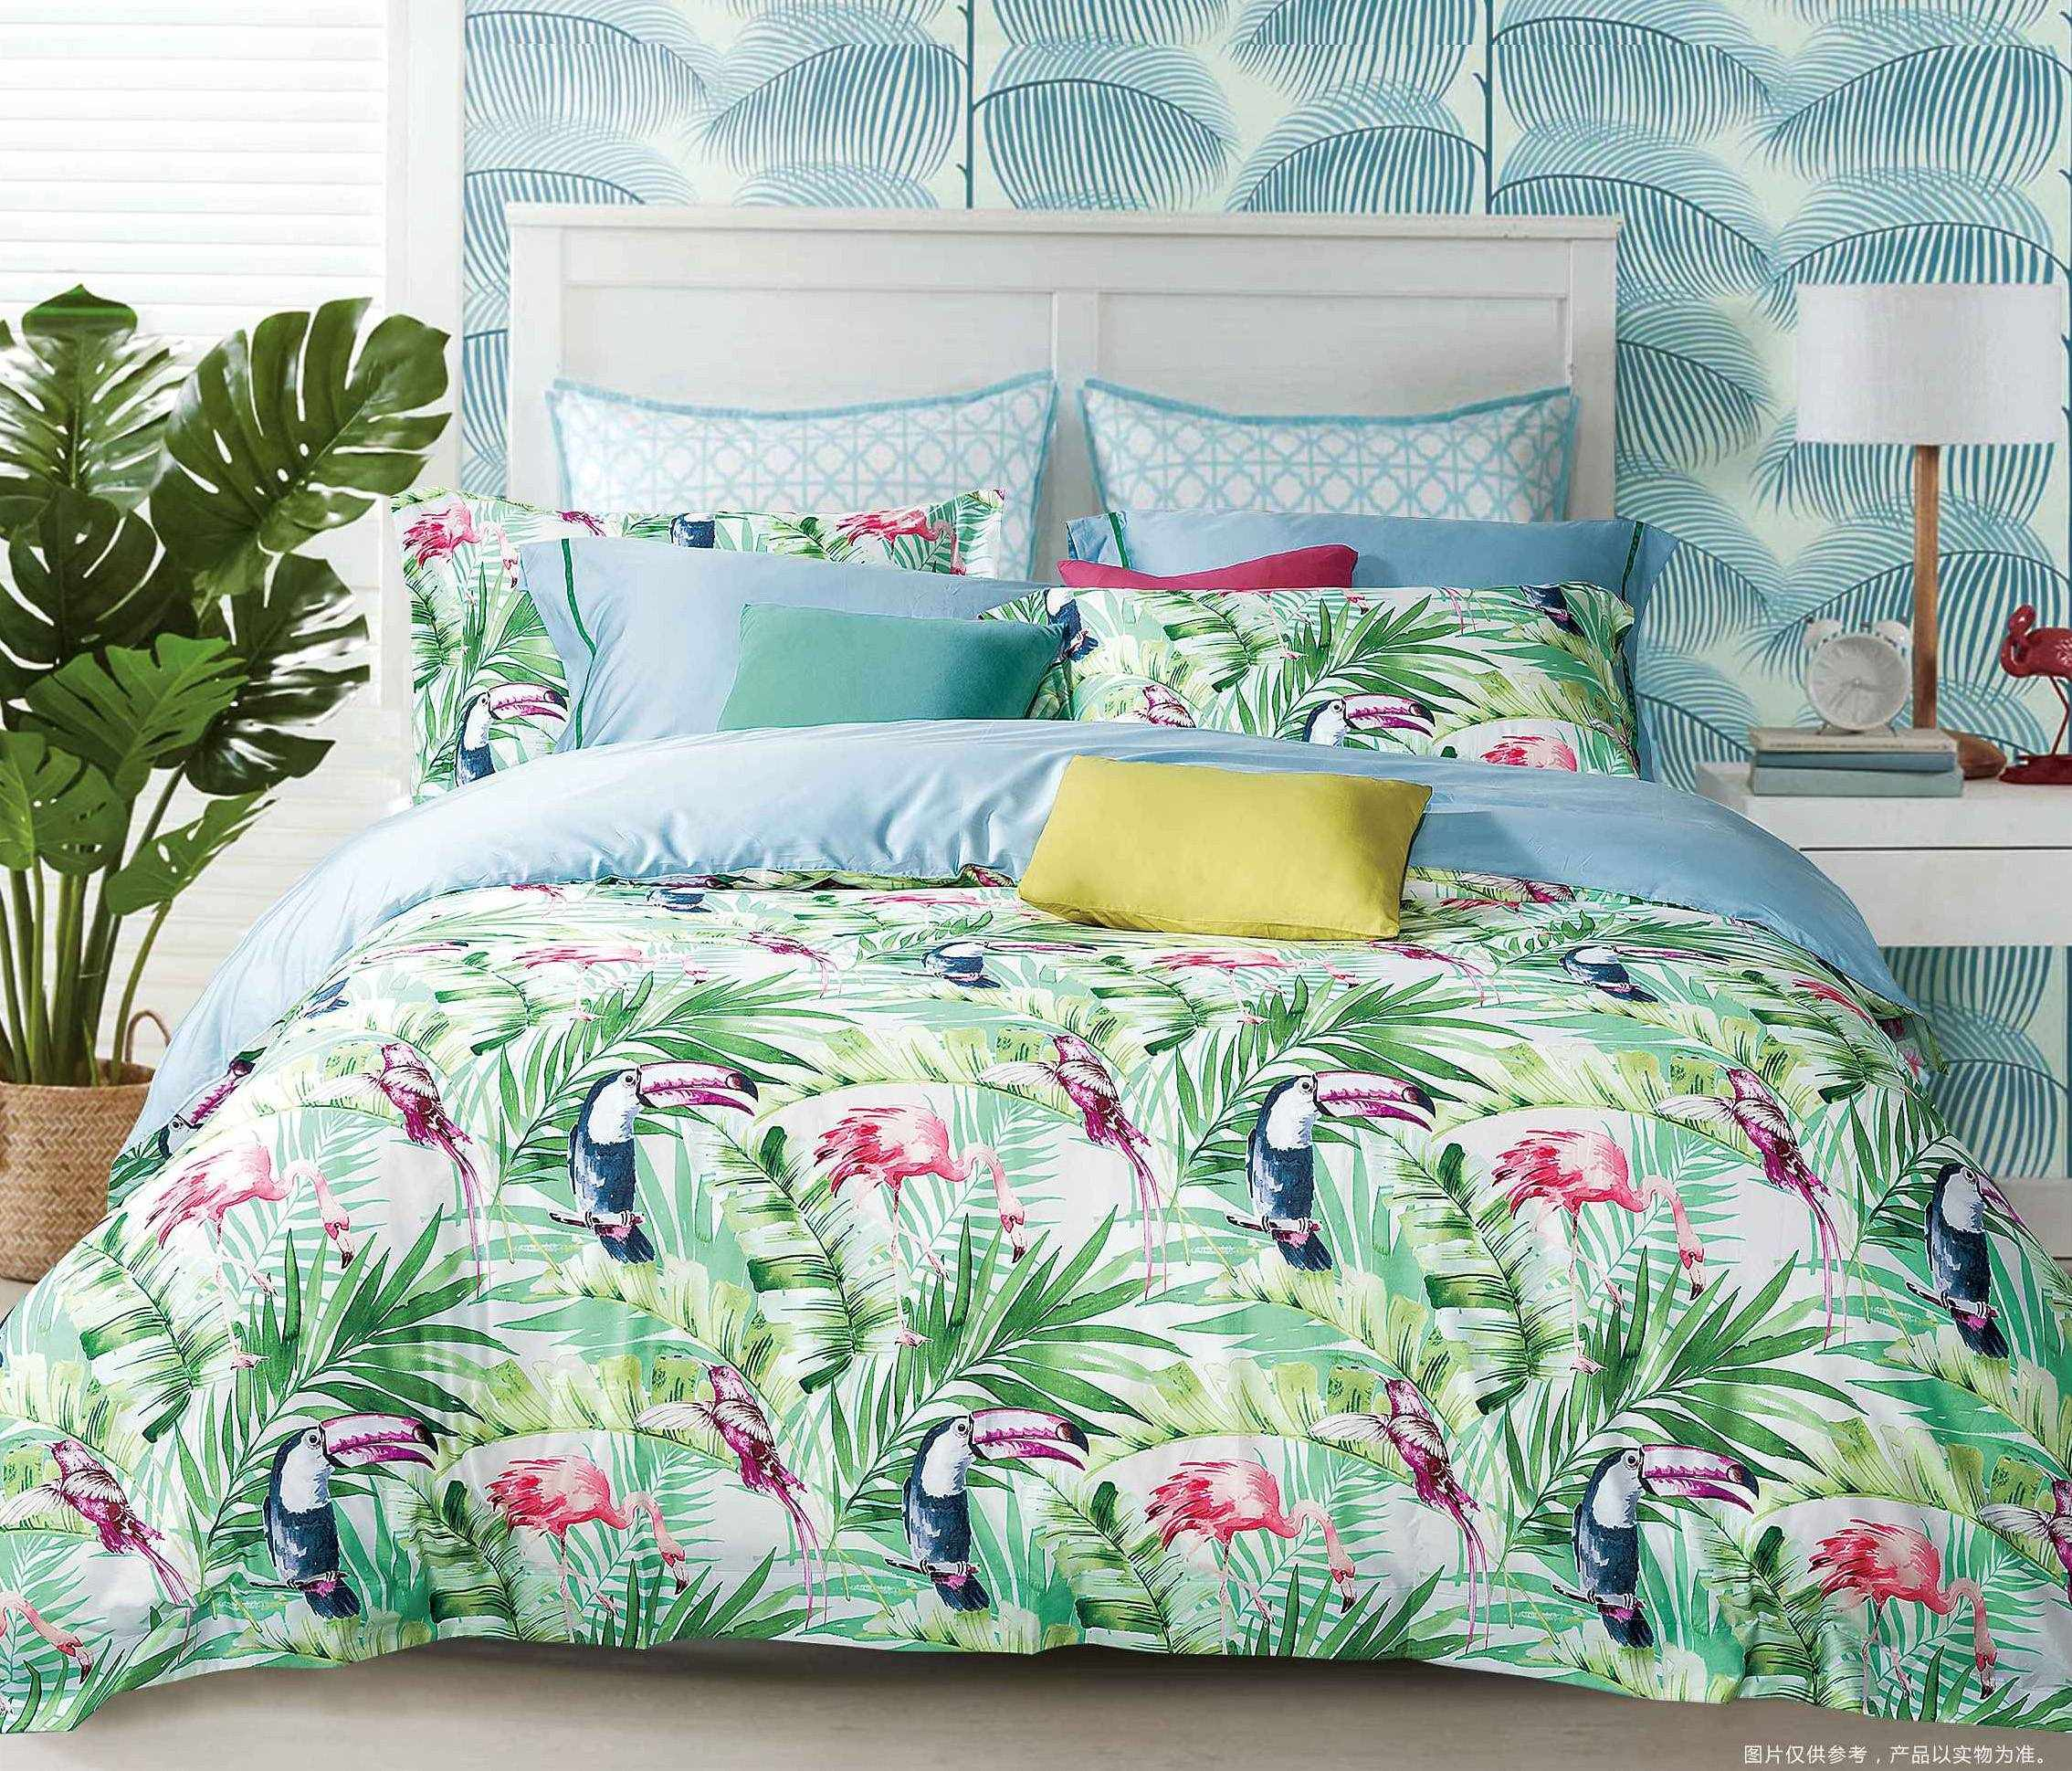 Tropical 500 Thread Count High Density Cotton Bedding Set